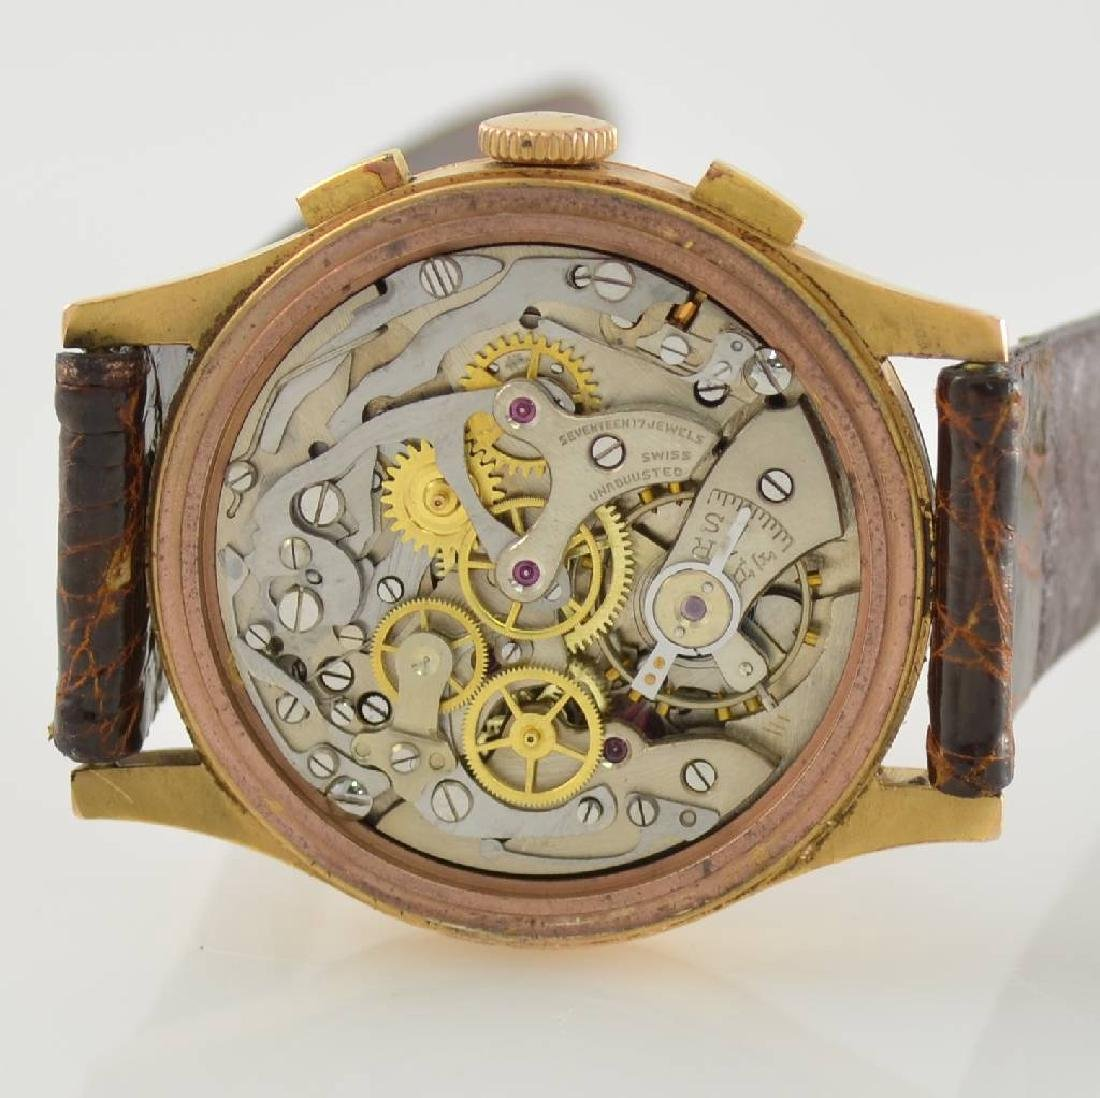 CHRONOGRAPH SUISSE 18k pink gold chronograph - 6